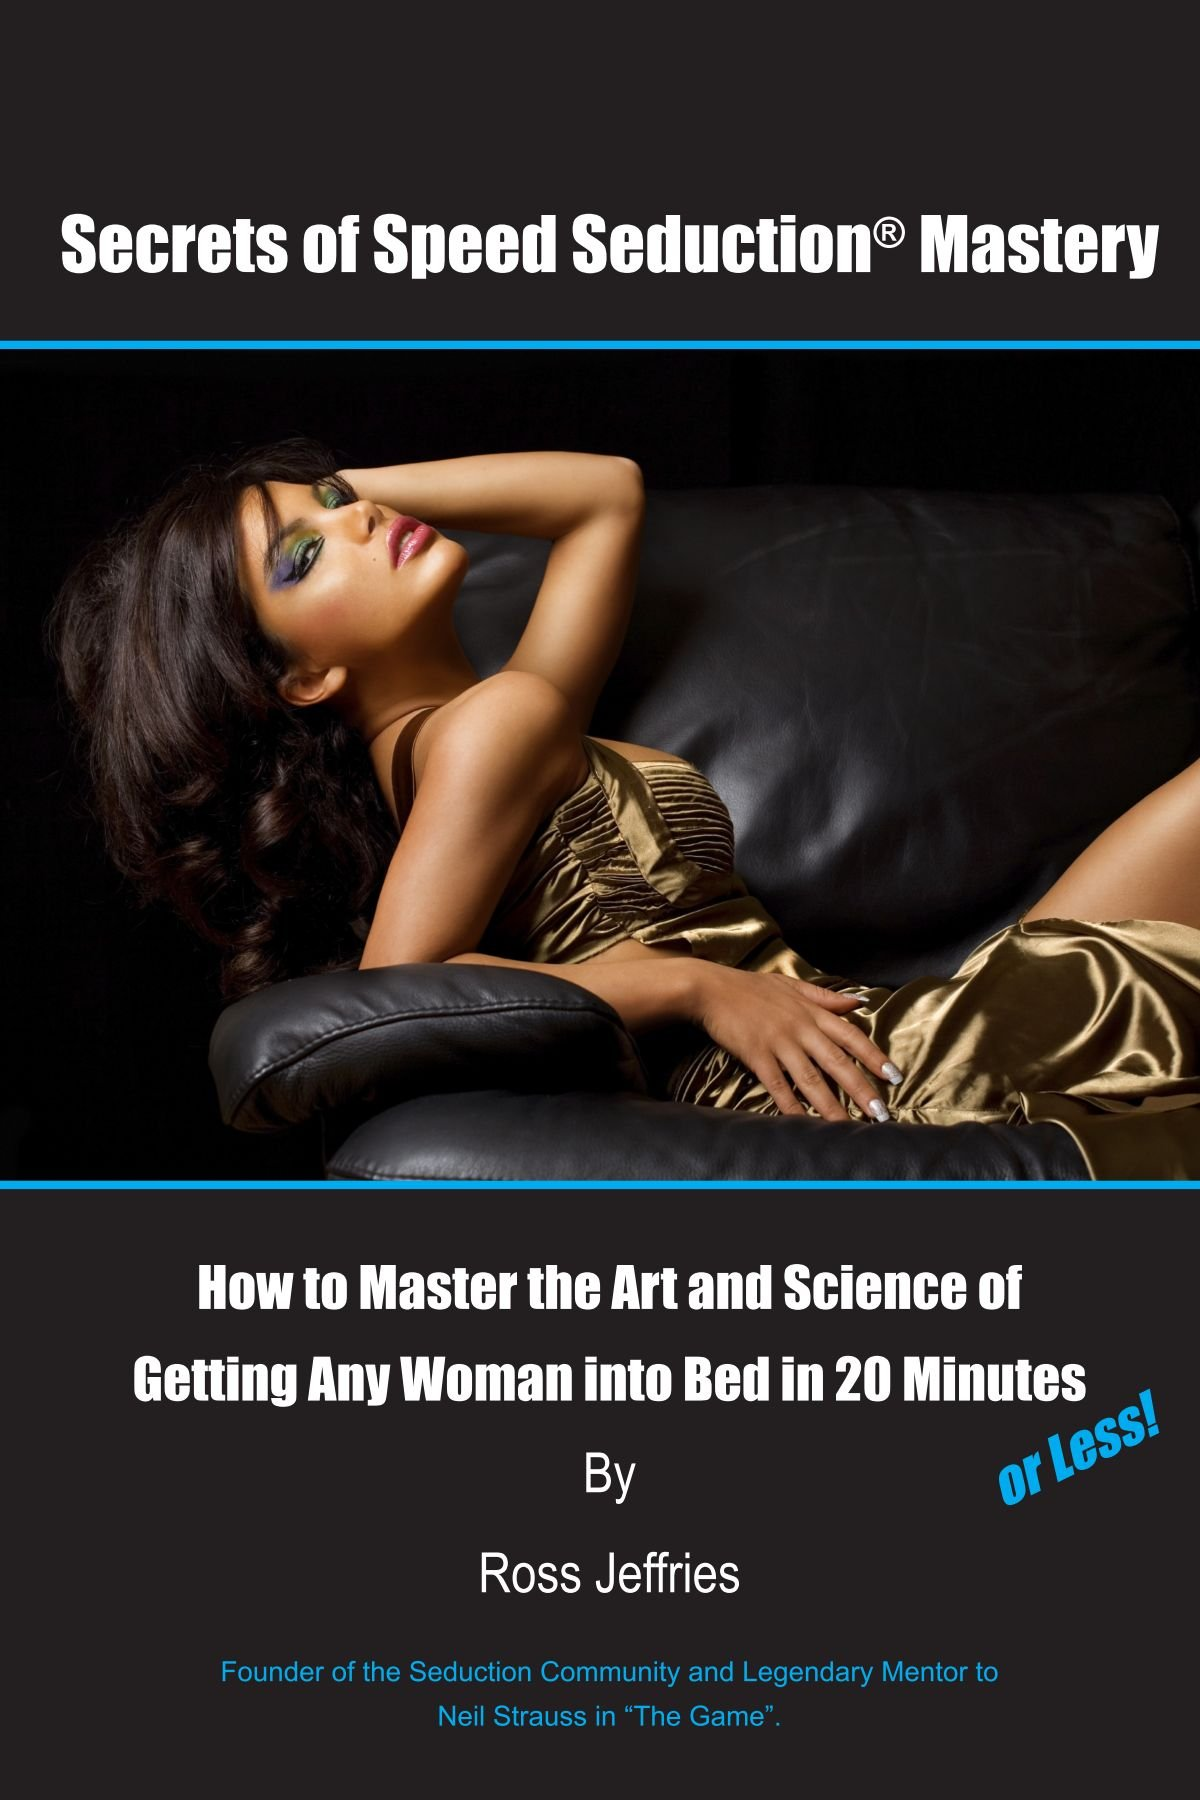 How to seduce women into bed